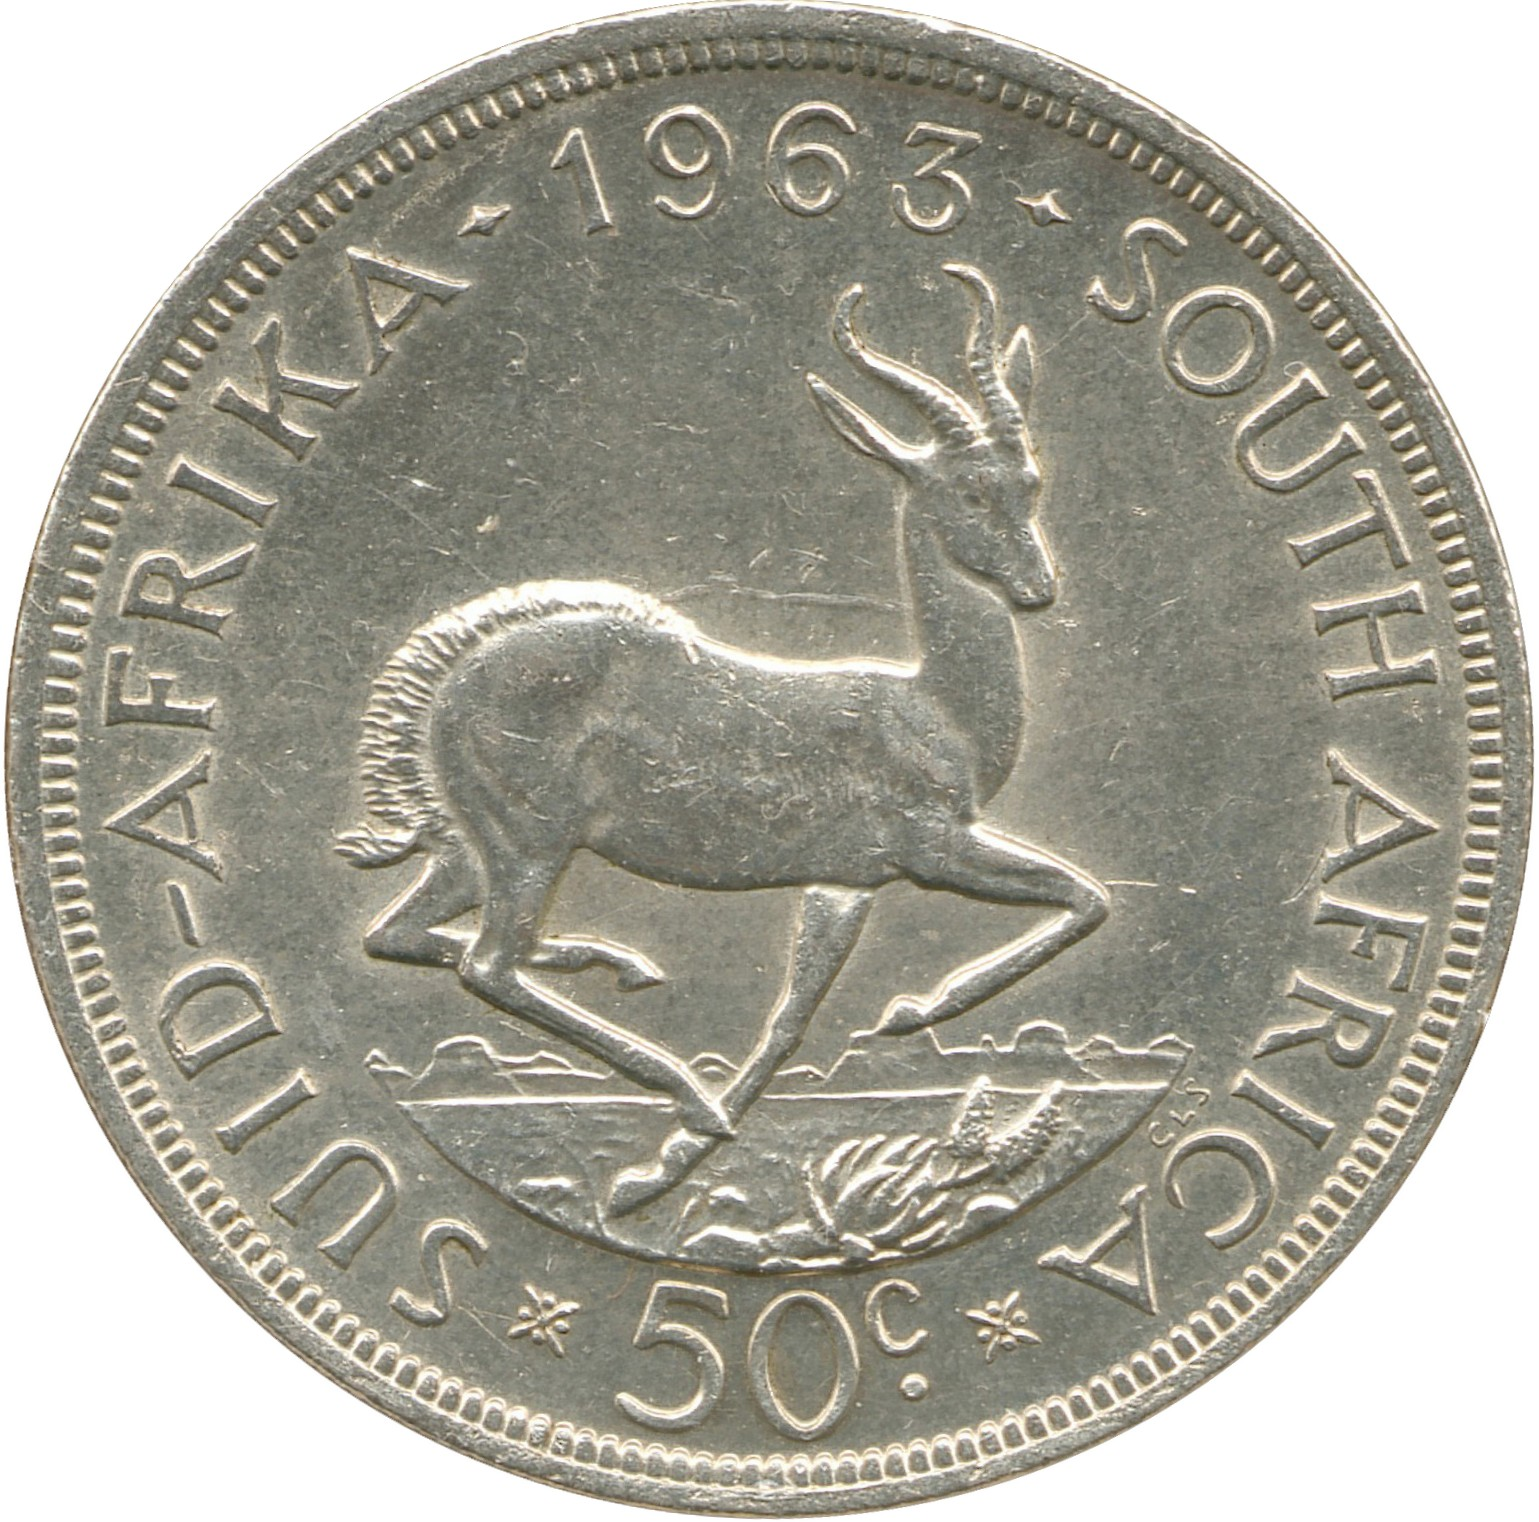 Guide To Selling Your South African Silver Coins